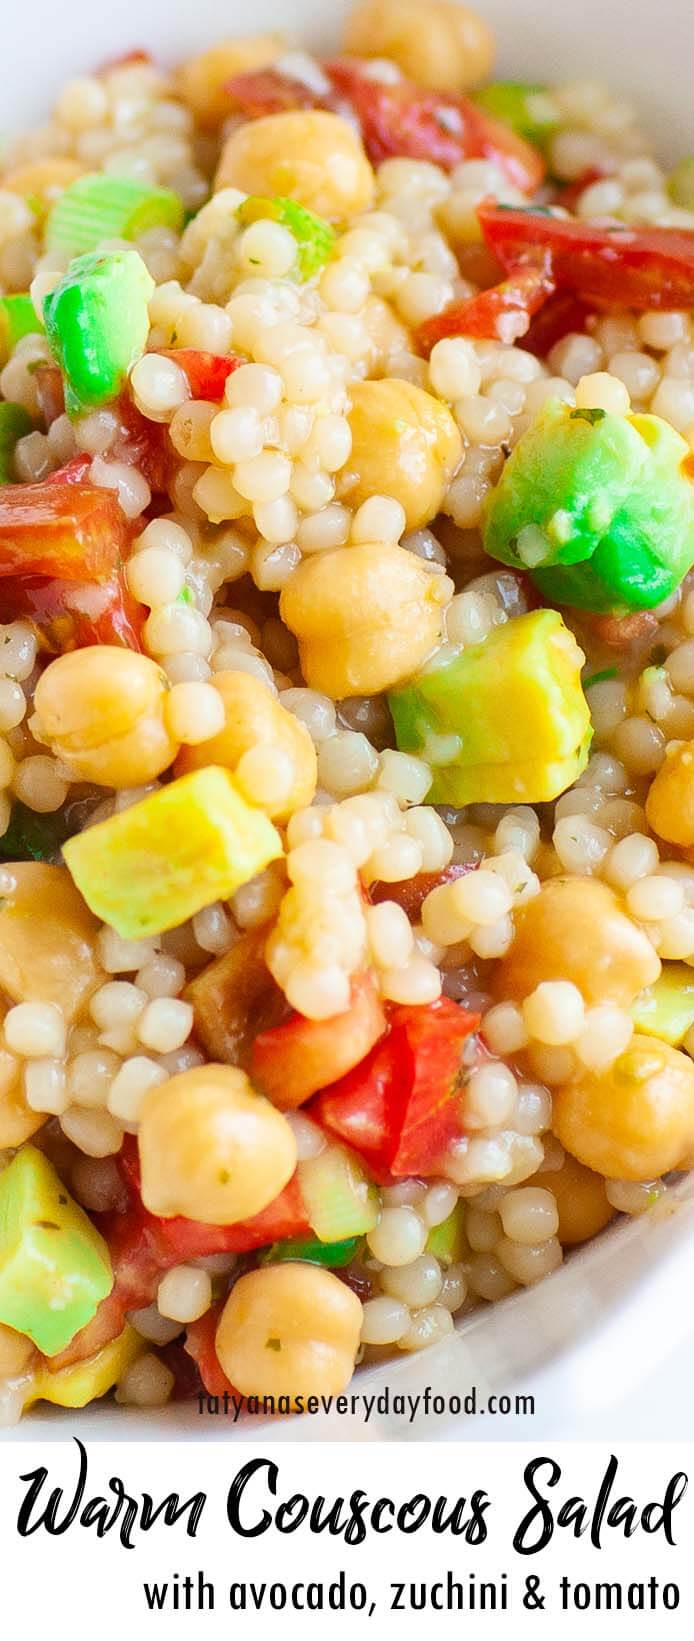 Warm Couscous Salad recipe